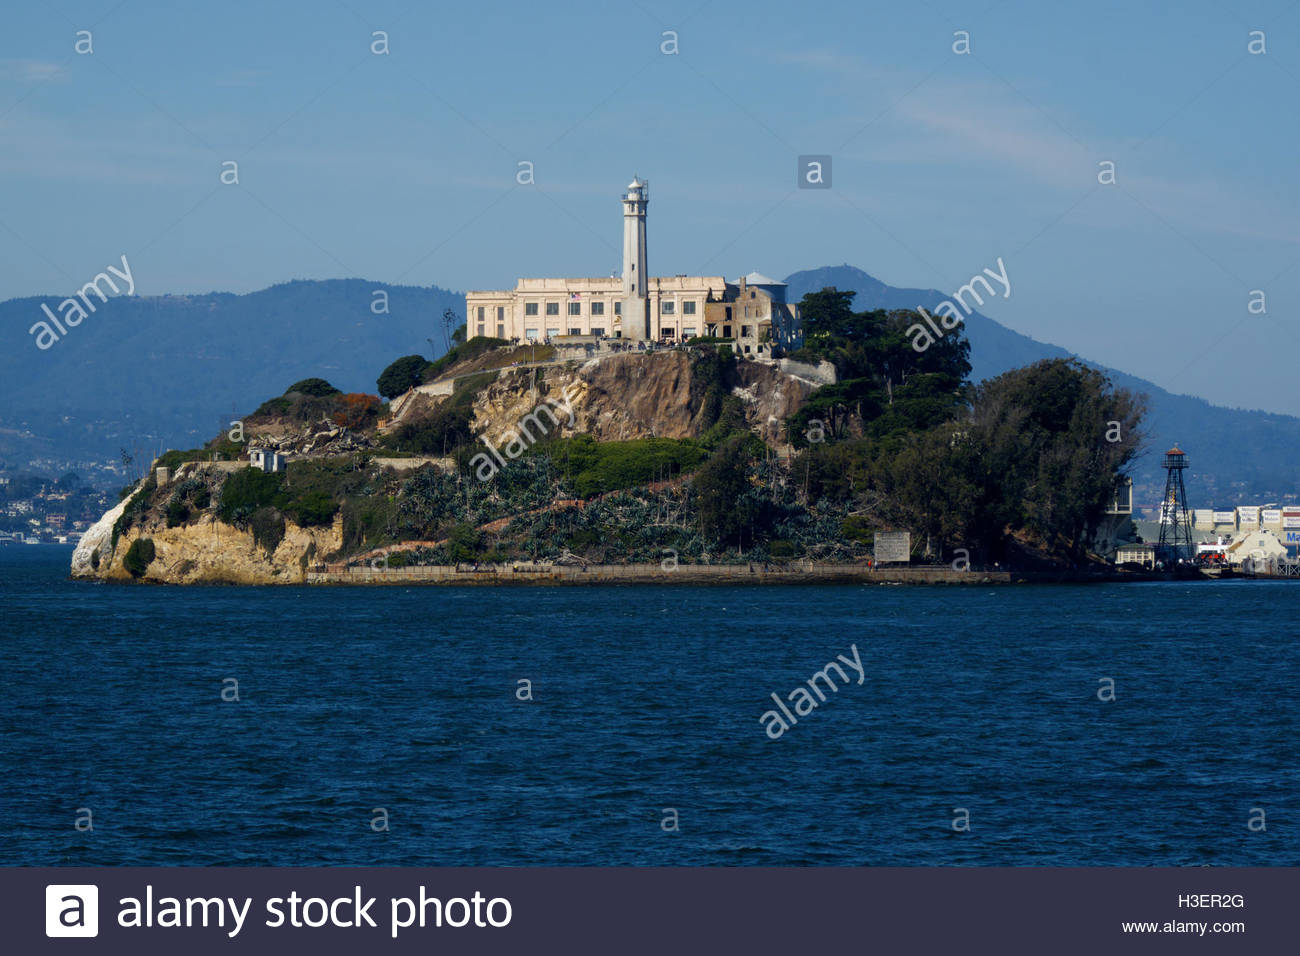 Alcatraz Federal Penitentiary from a tour boat in the San Francisco Bay, San Francisco, California. - Stock Image